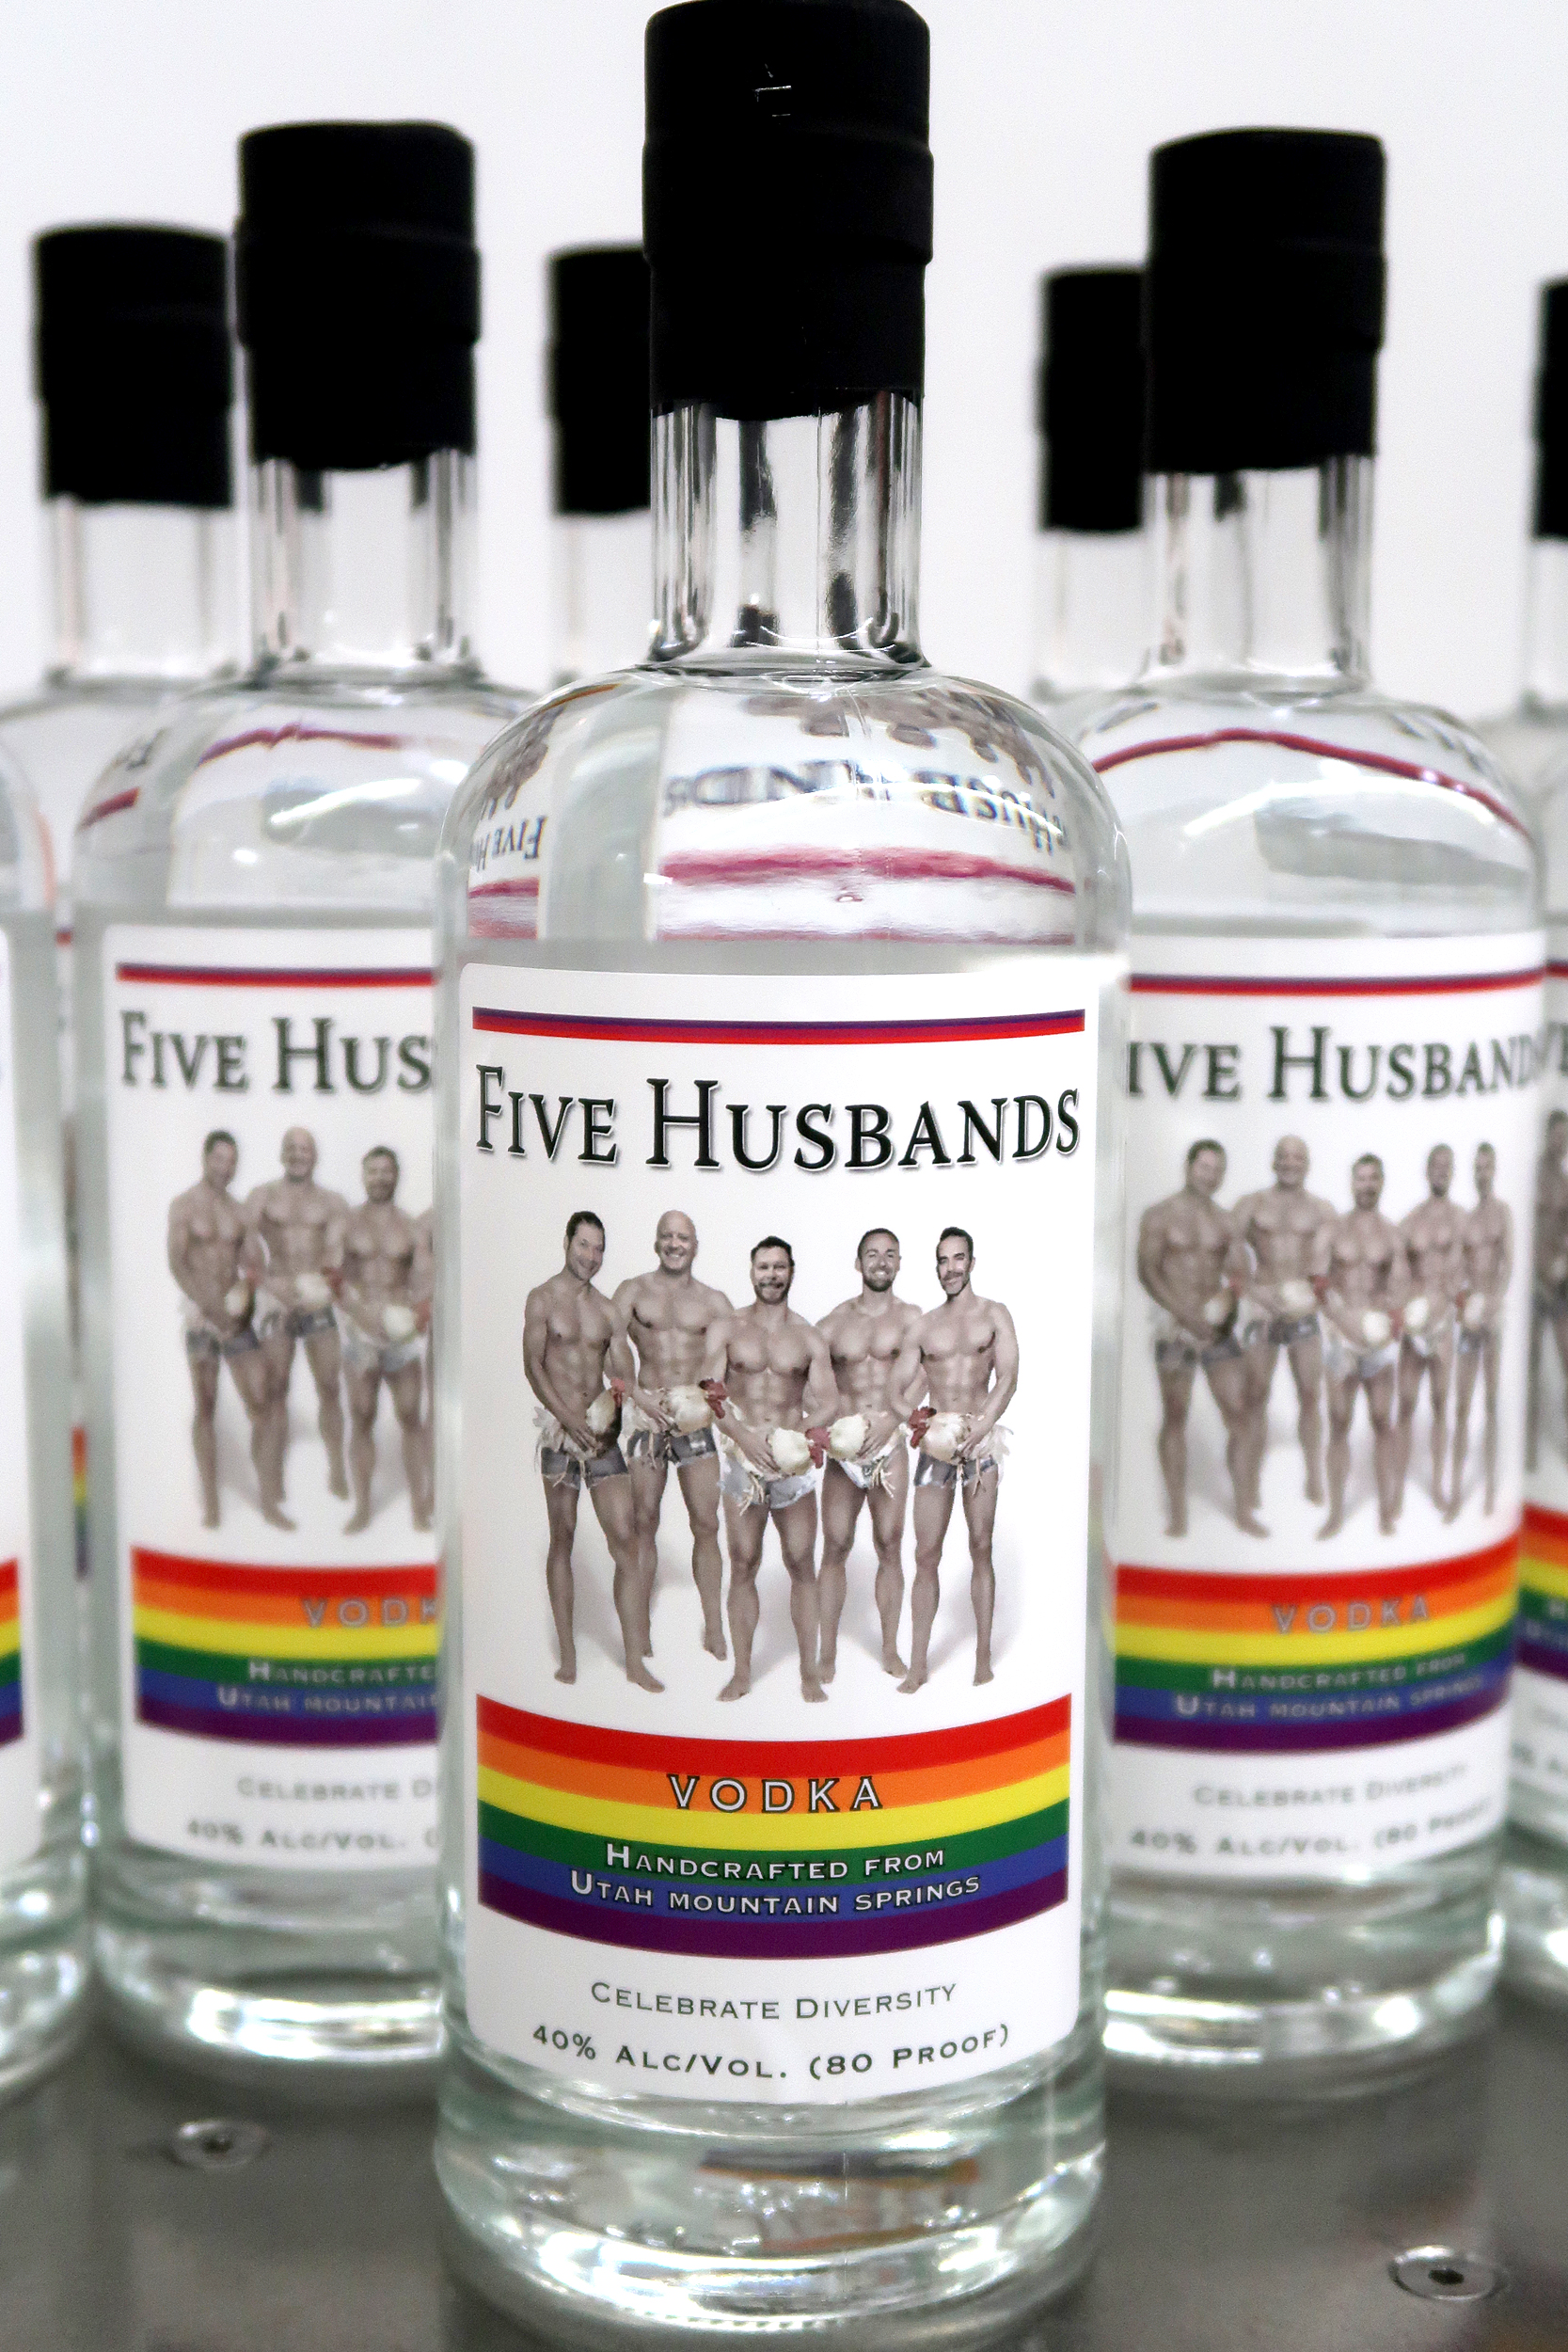 Utah distiller unveils gay-themed 'Five Husbands' vodka for pride festival